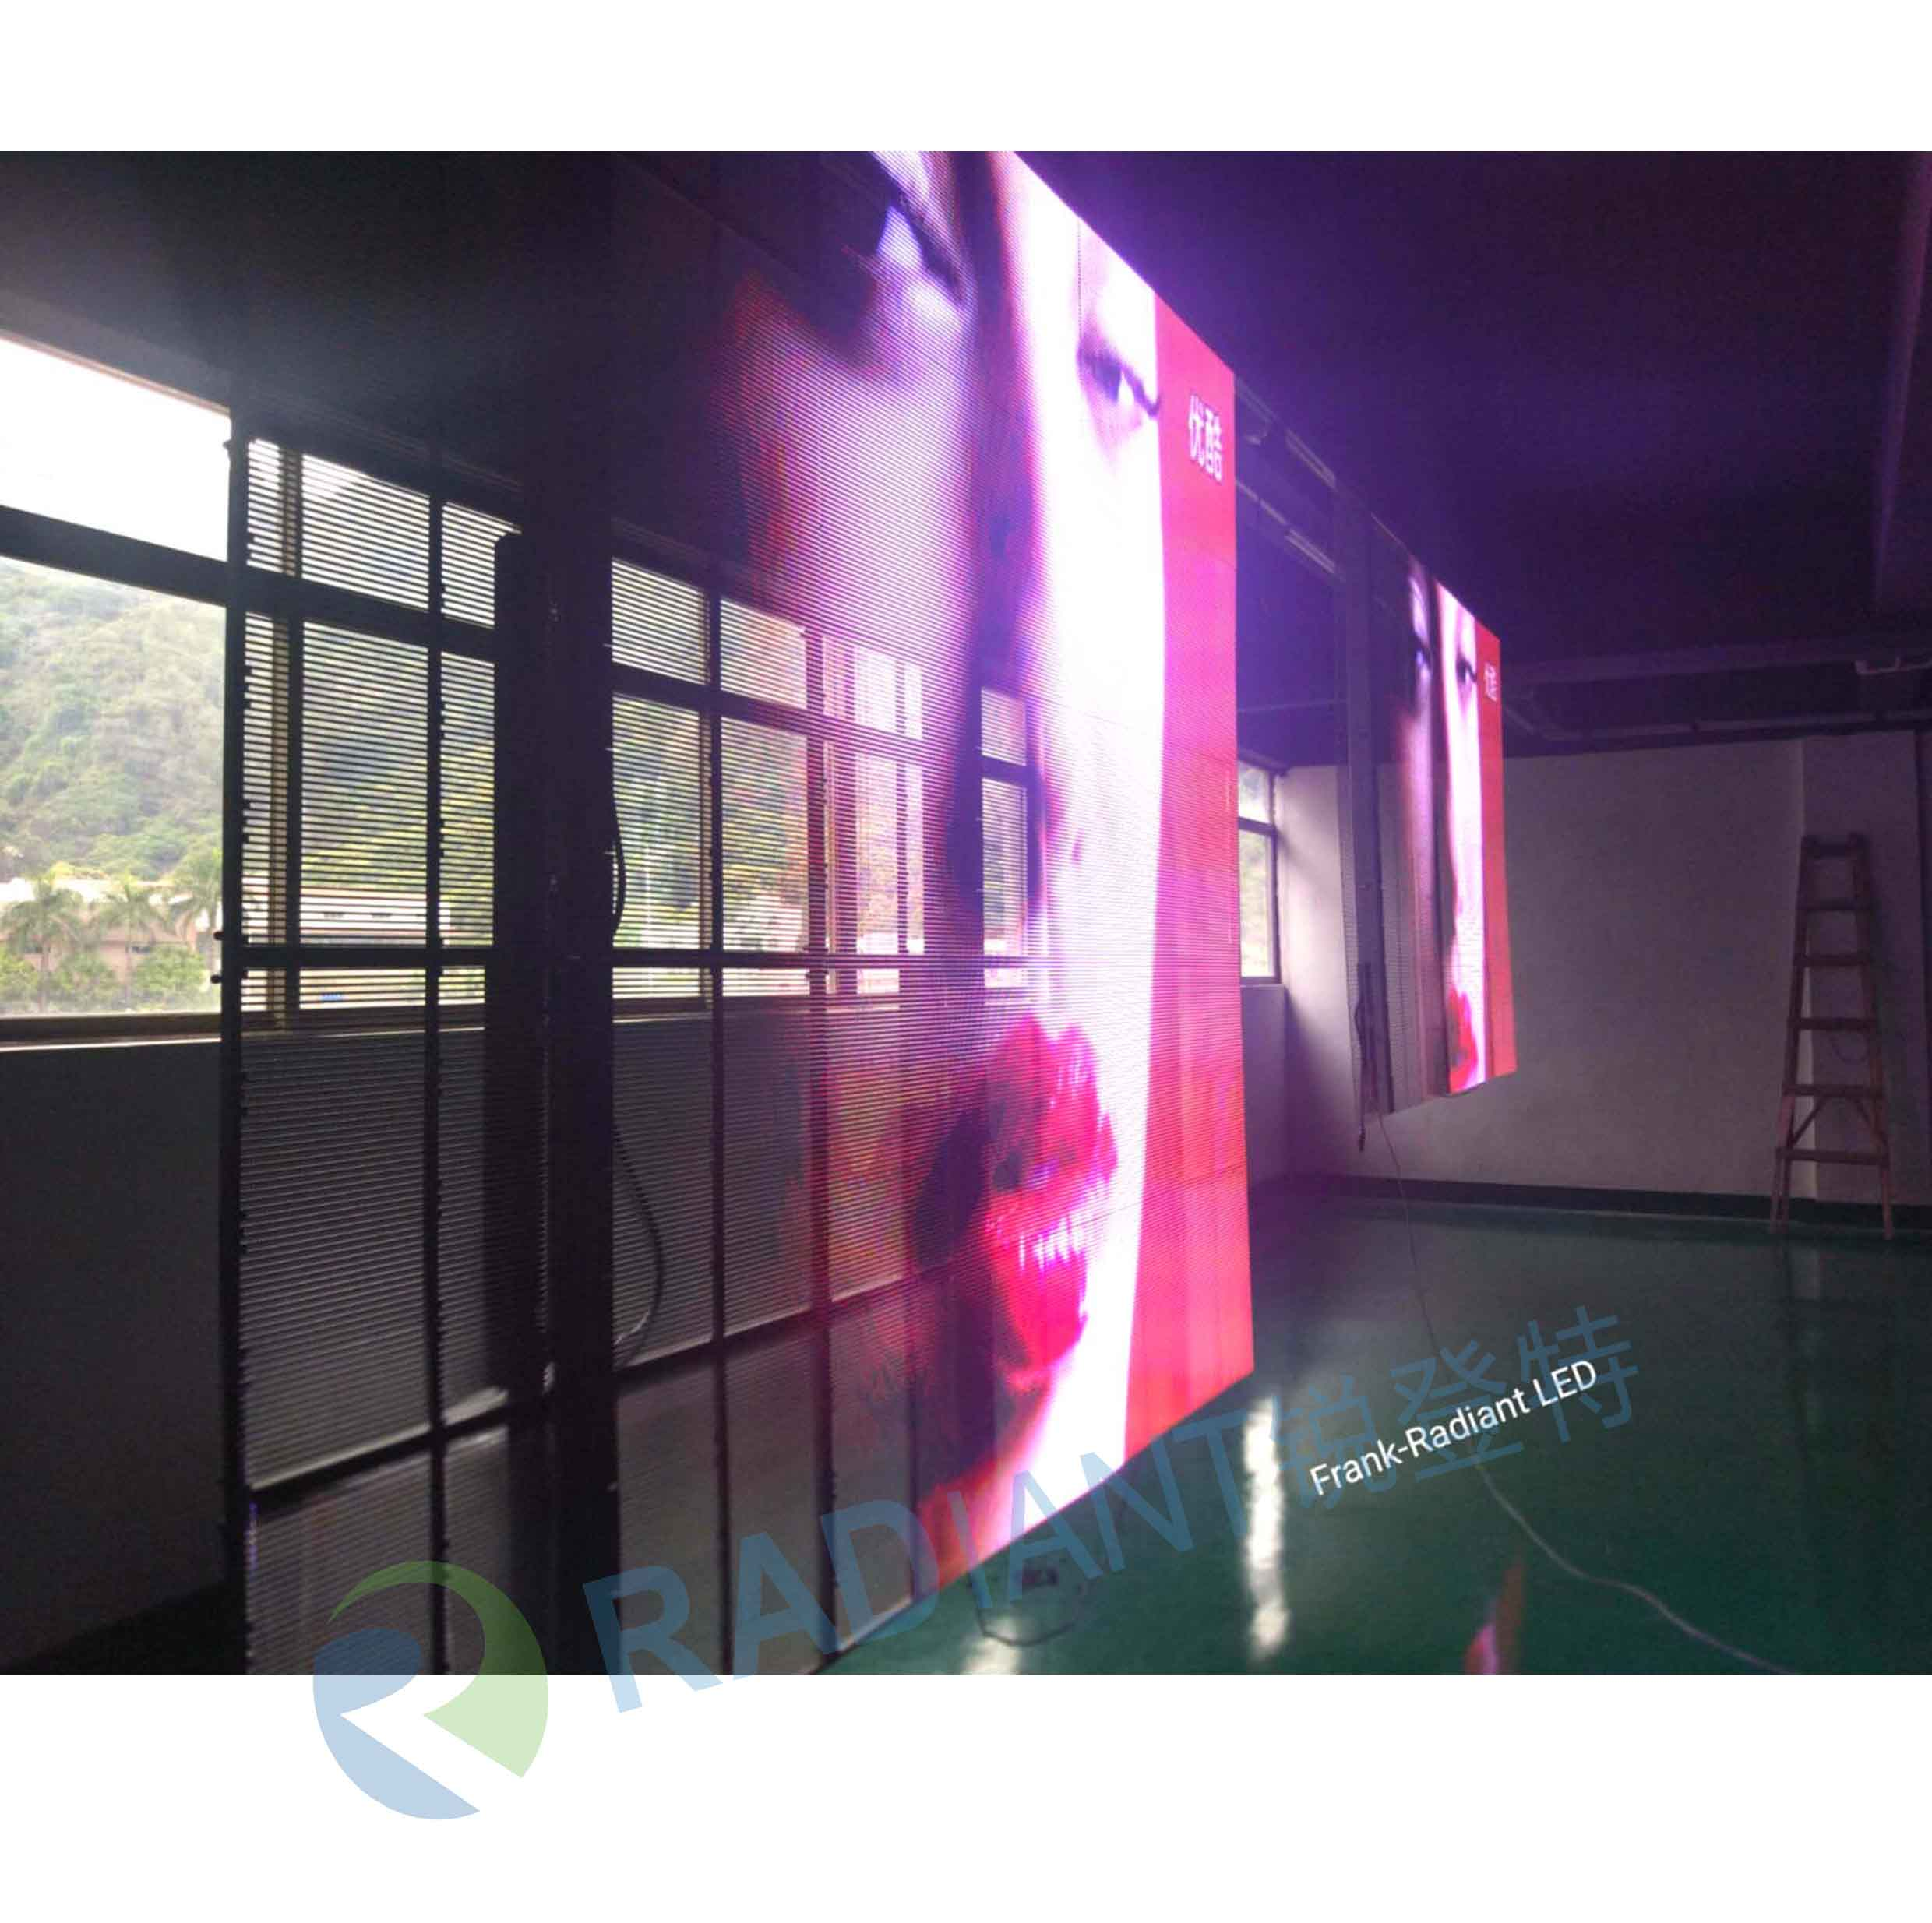 Led transparante mesh displays doorschijnend led screen voor retail etalage winkel visual merchandising